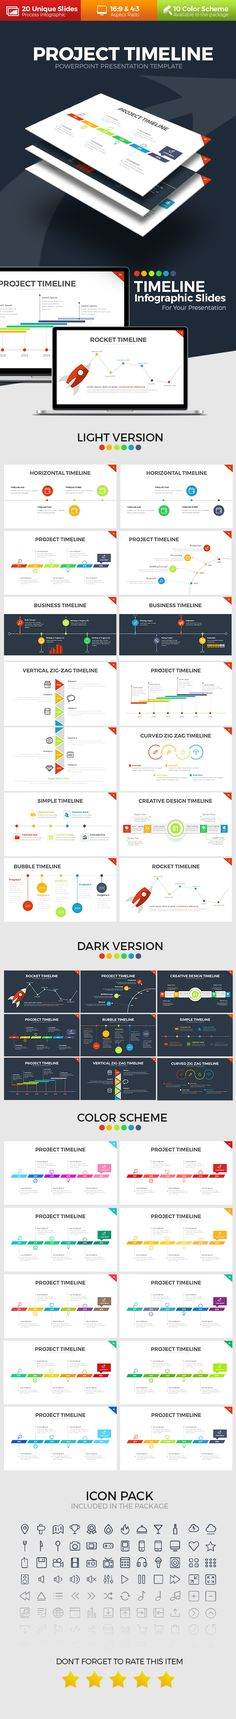 Project Management Google Slides Template   Google Slides     Buy Project Timeline PowerPoint Template by RRgraph on GraphicRiver  Project  Timeline PowerPoint Presentation Template is PowerPoint Template that